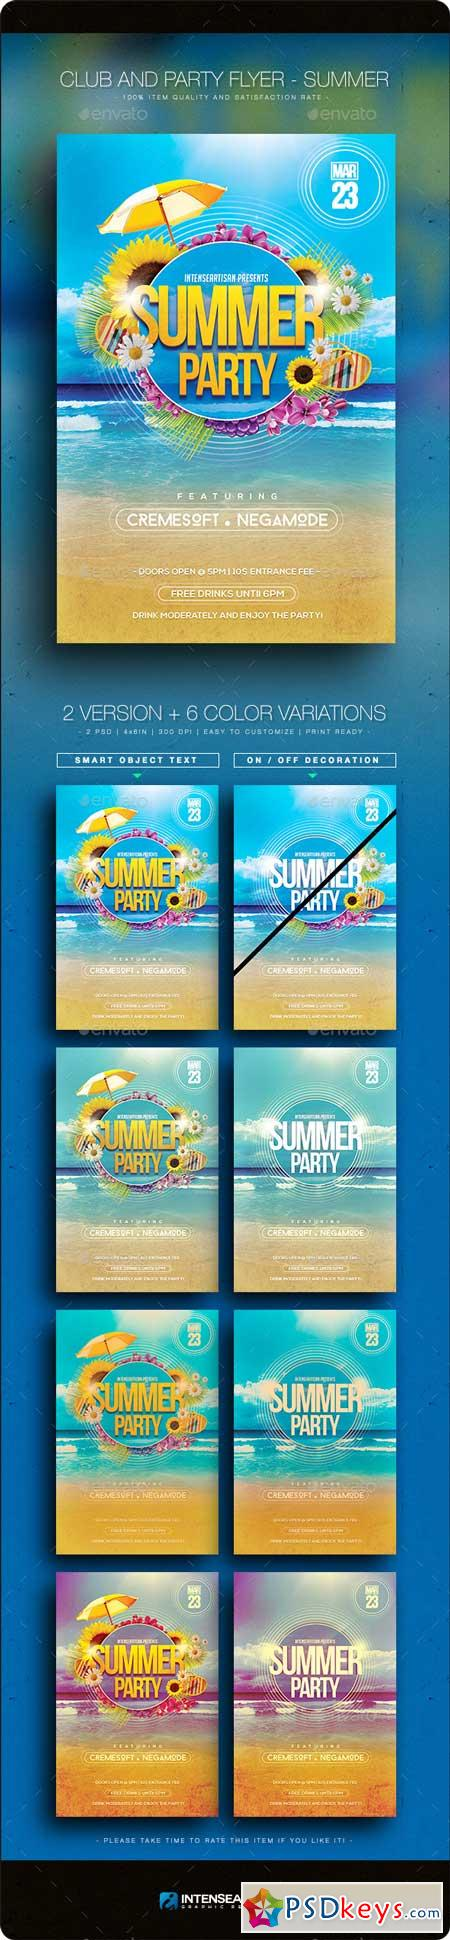 Summer V.2 - Club And Party Flyer 10806161